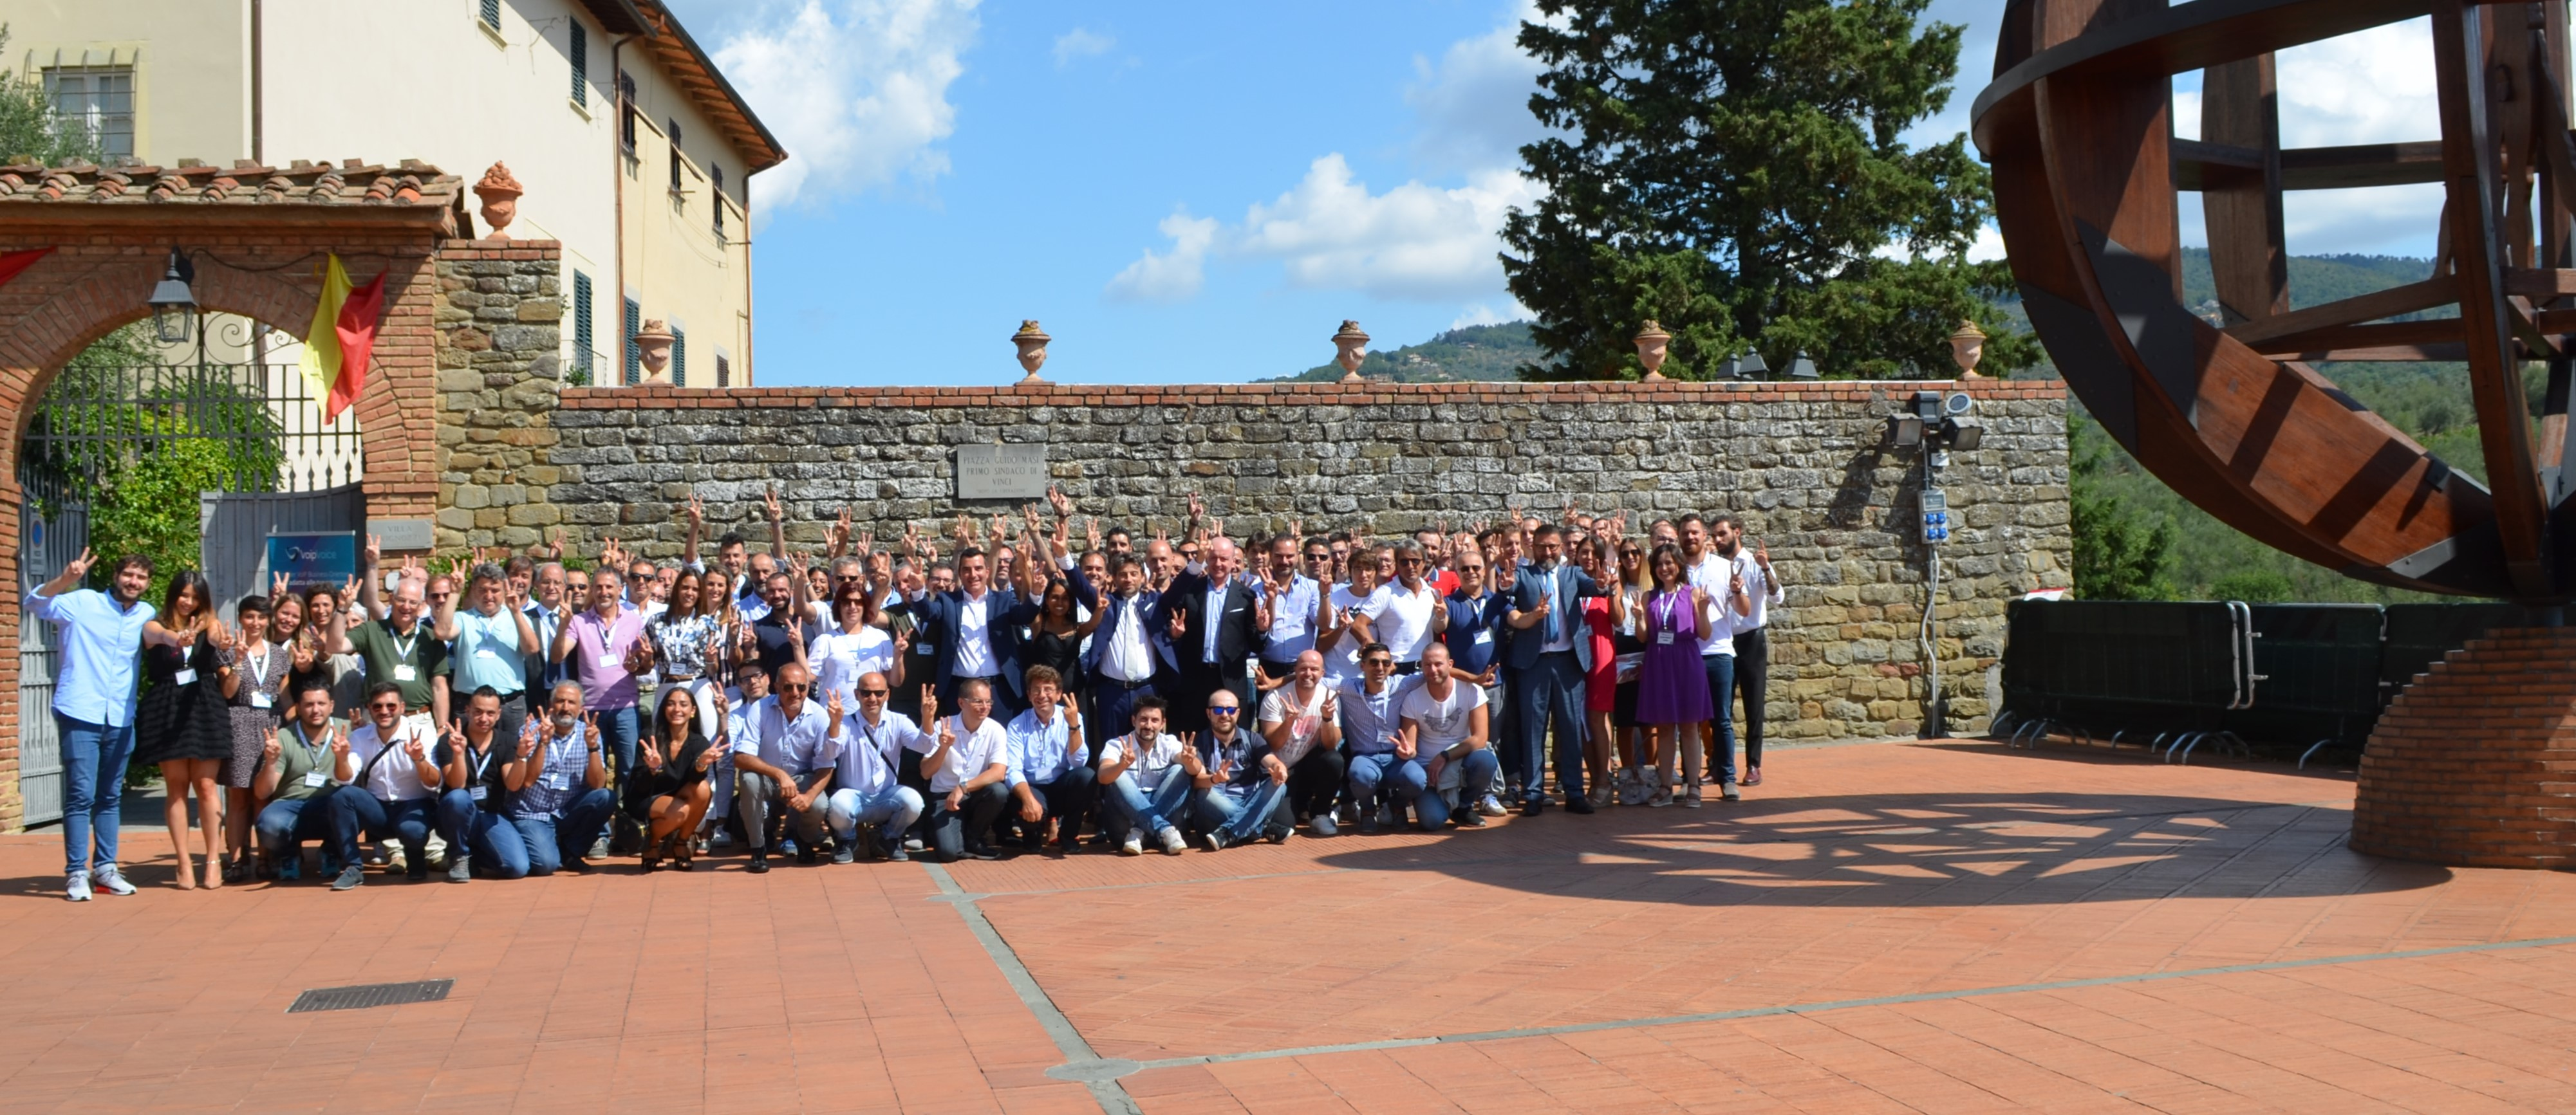 Nel segno di Leonardo da Vinci: 2° Top Partner Meeting VoipVoice